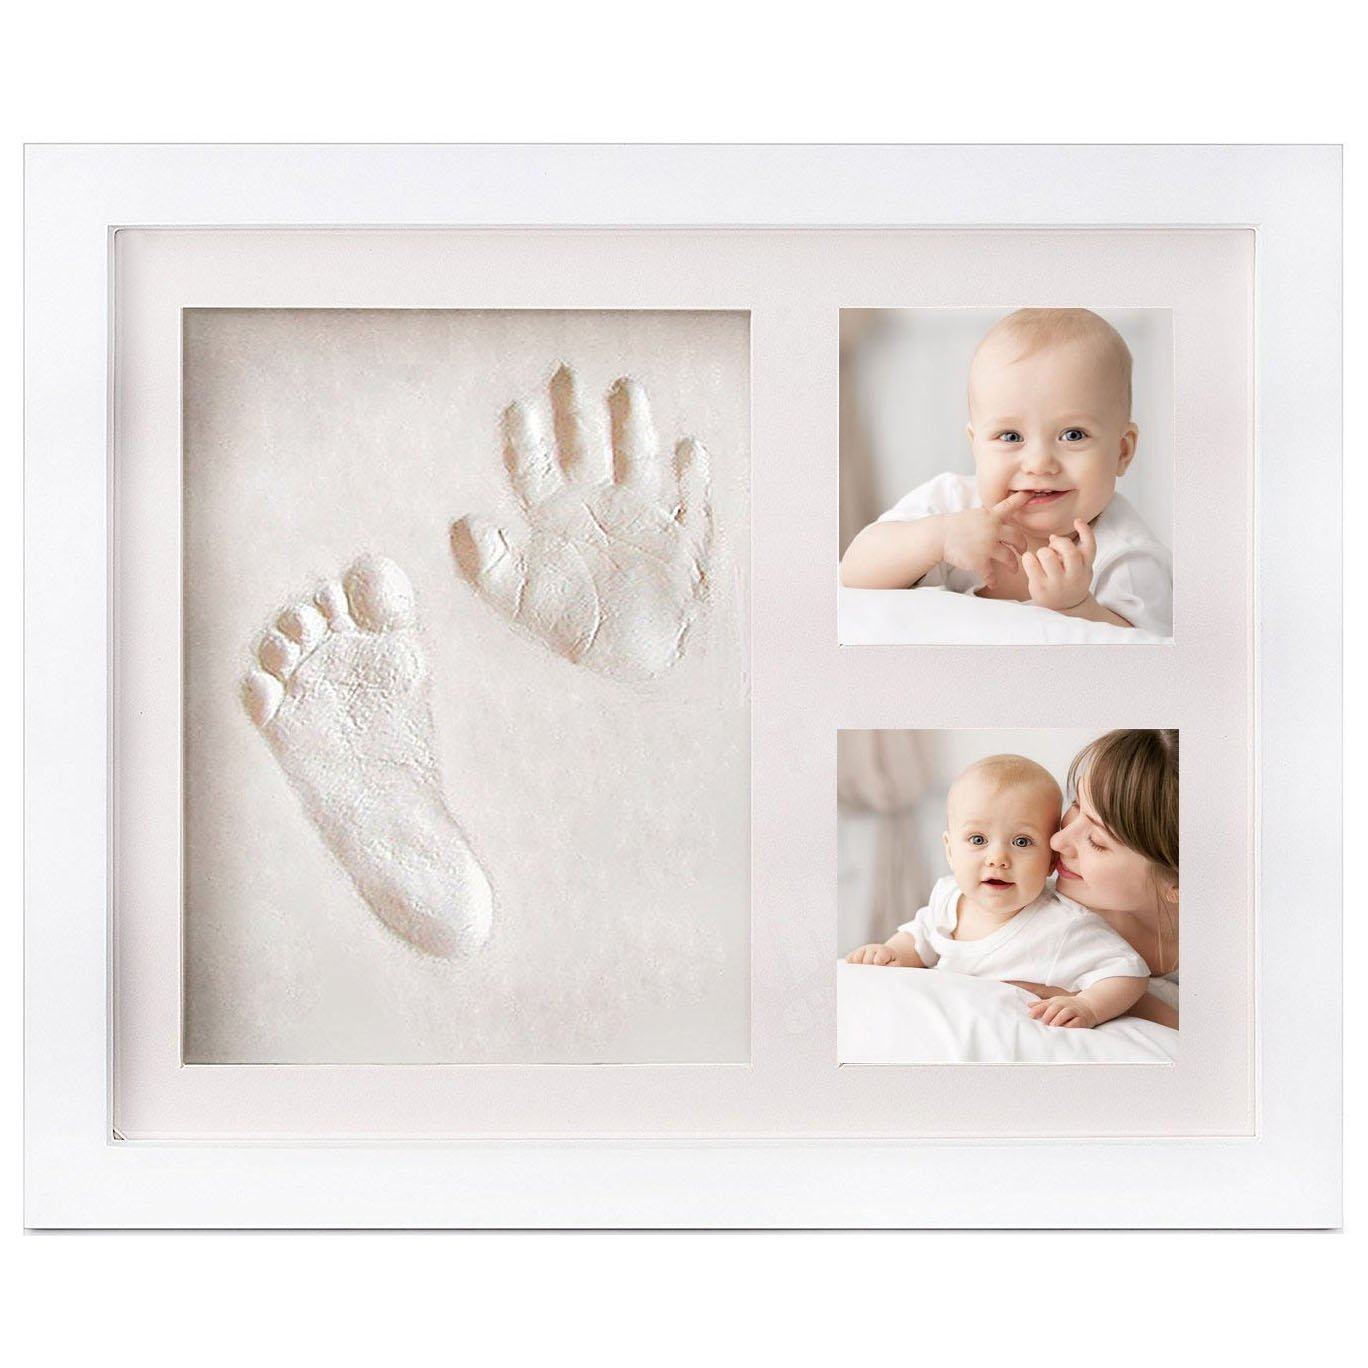 TASIPA Baby Shower Gifts for Christening Registry Baby Footprint and Handprint Kit Baby Handprint Kit Memorable Keepsake for Room Wall or Table Decor